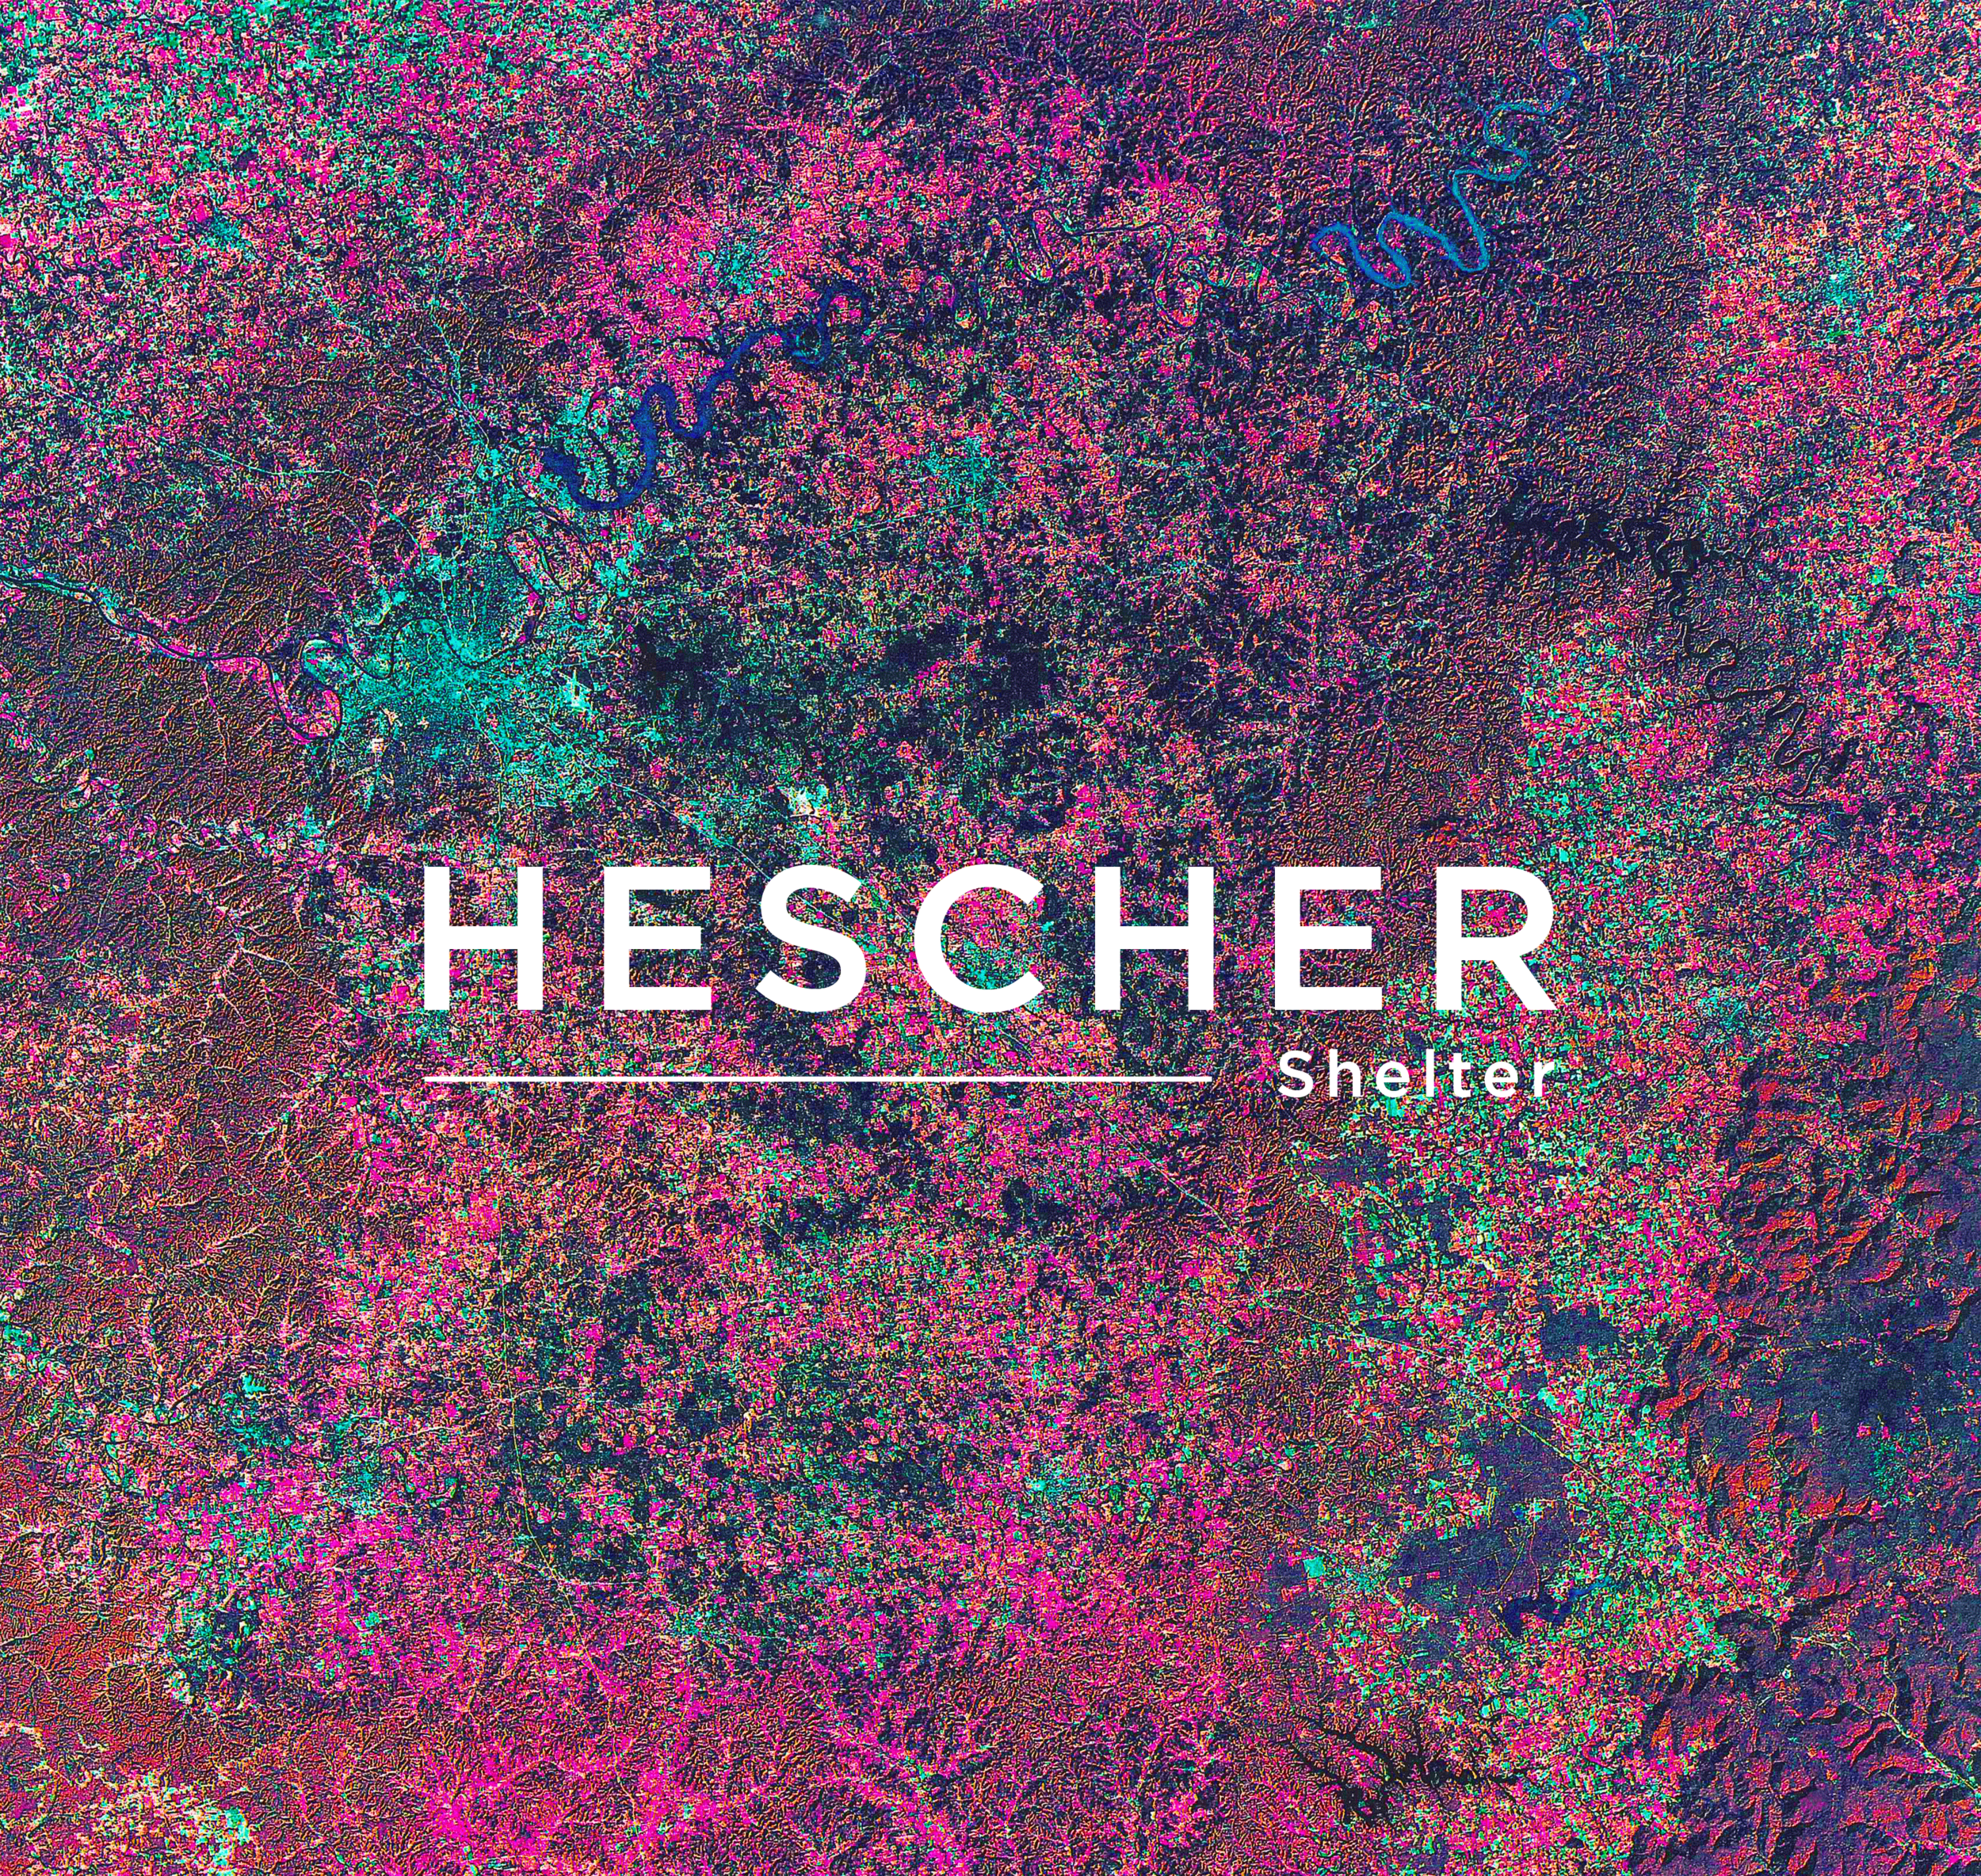 Shelter Single - Listen to Hescher'scover of Shelterby The xxHERE / Stream or download for FREE